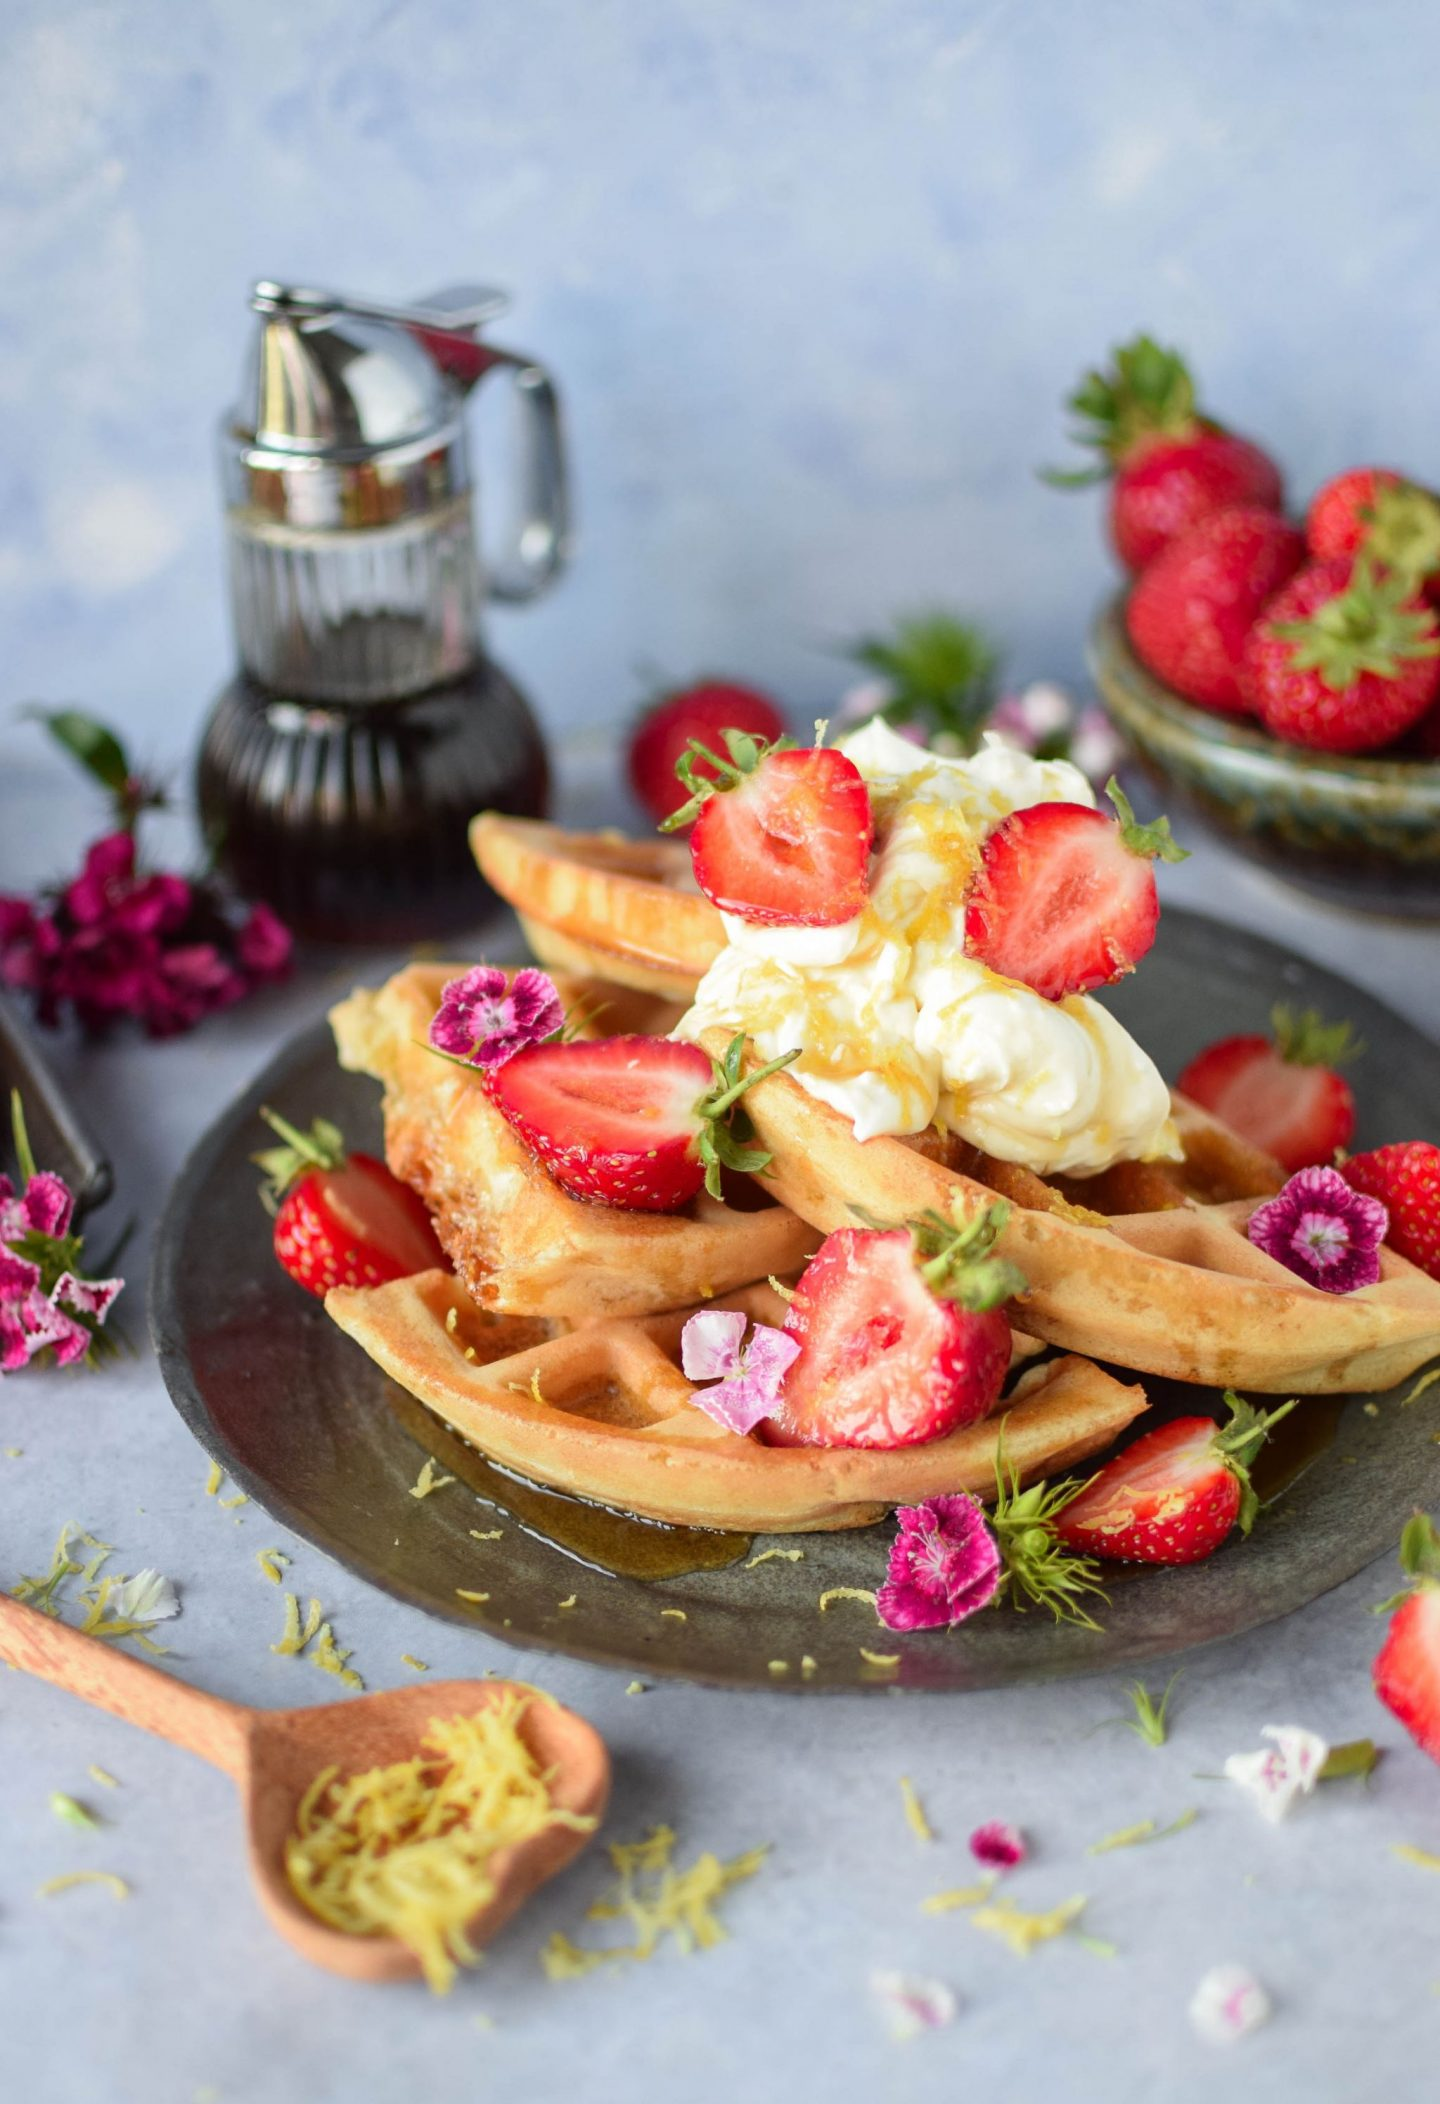 Overnight Lemon and Strawberry Waffles